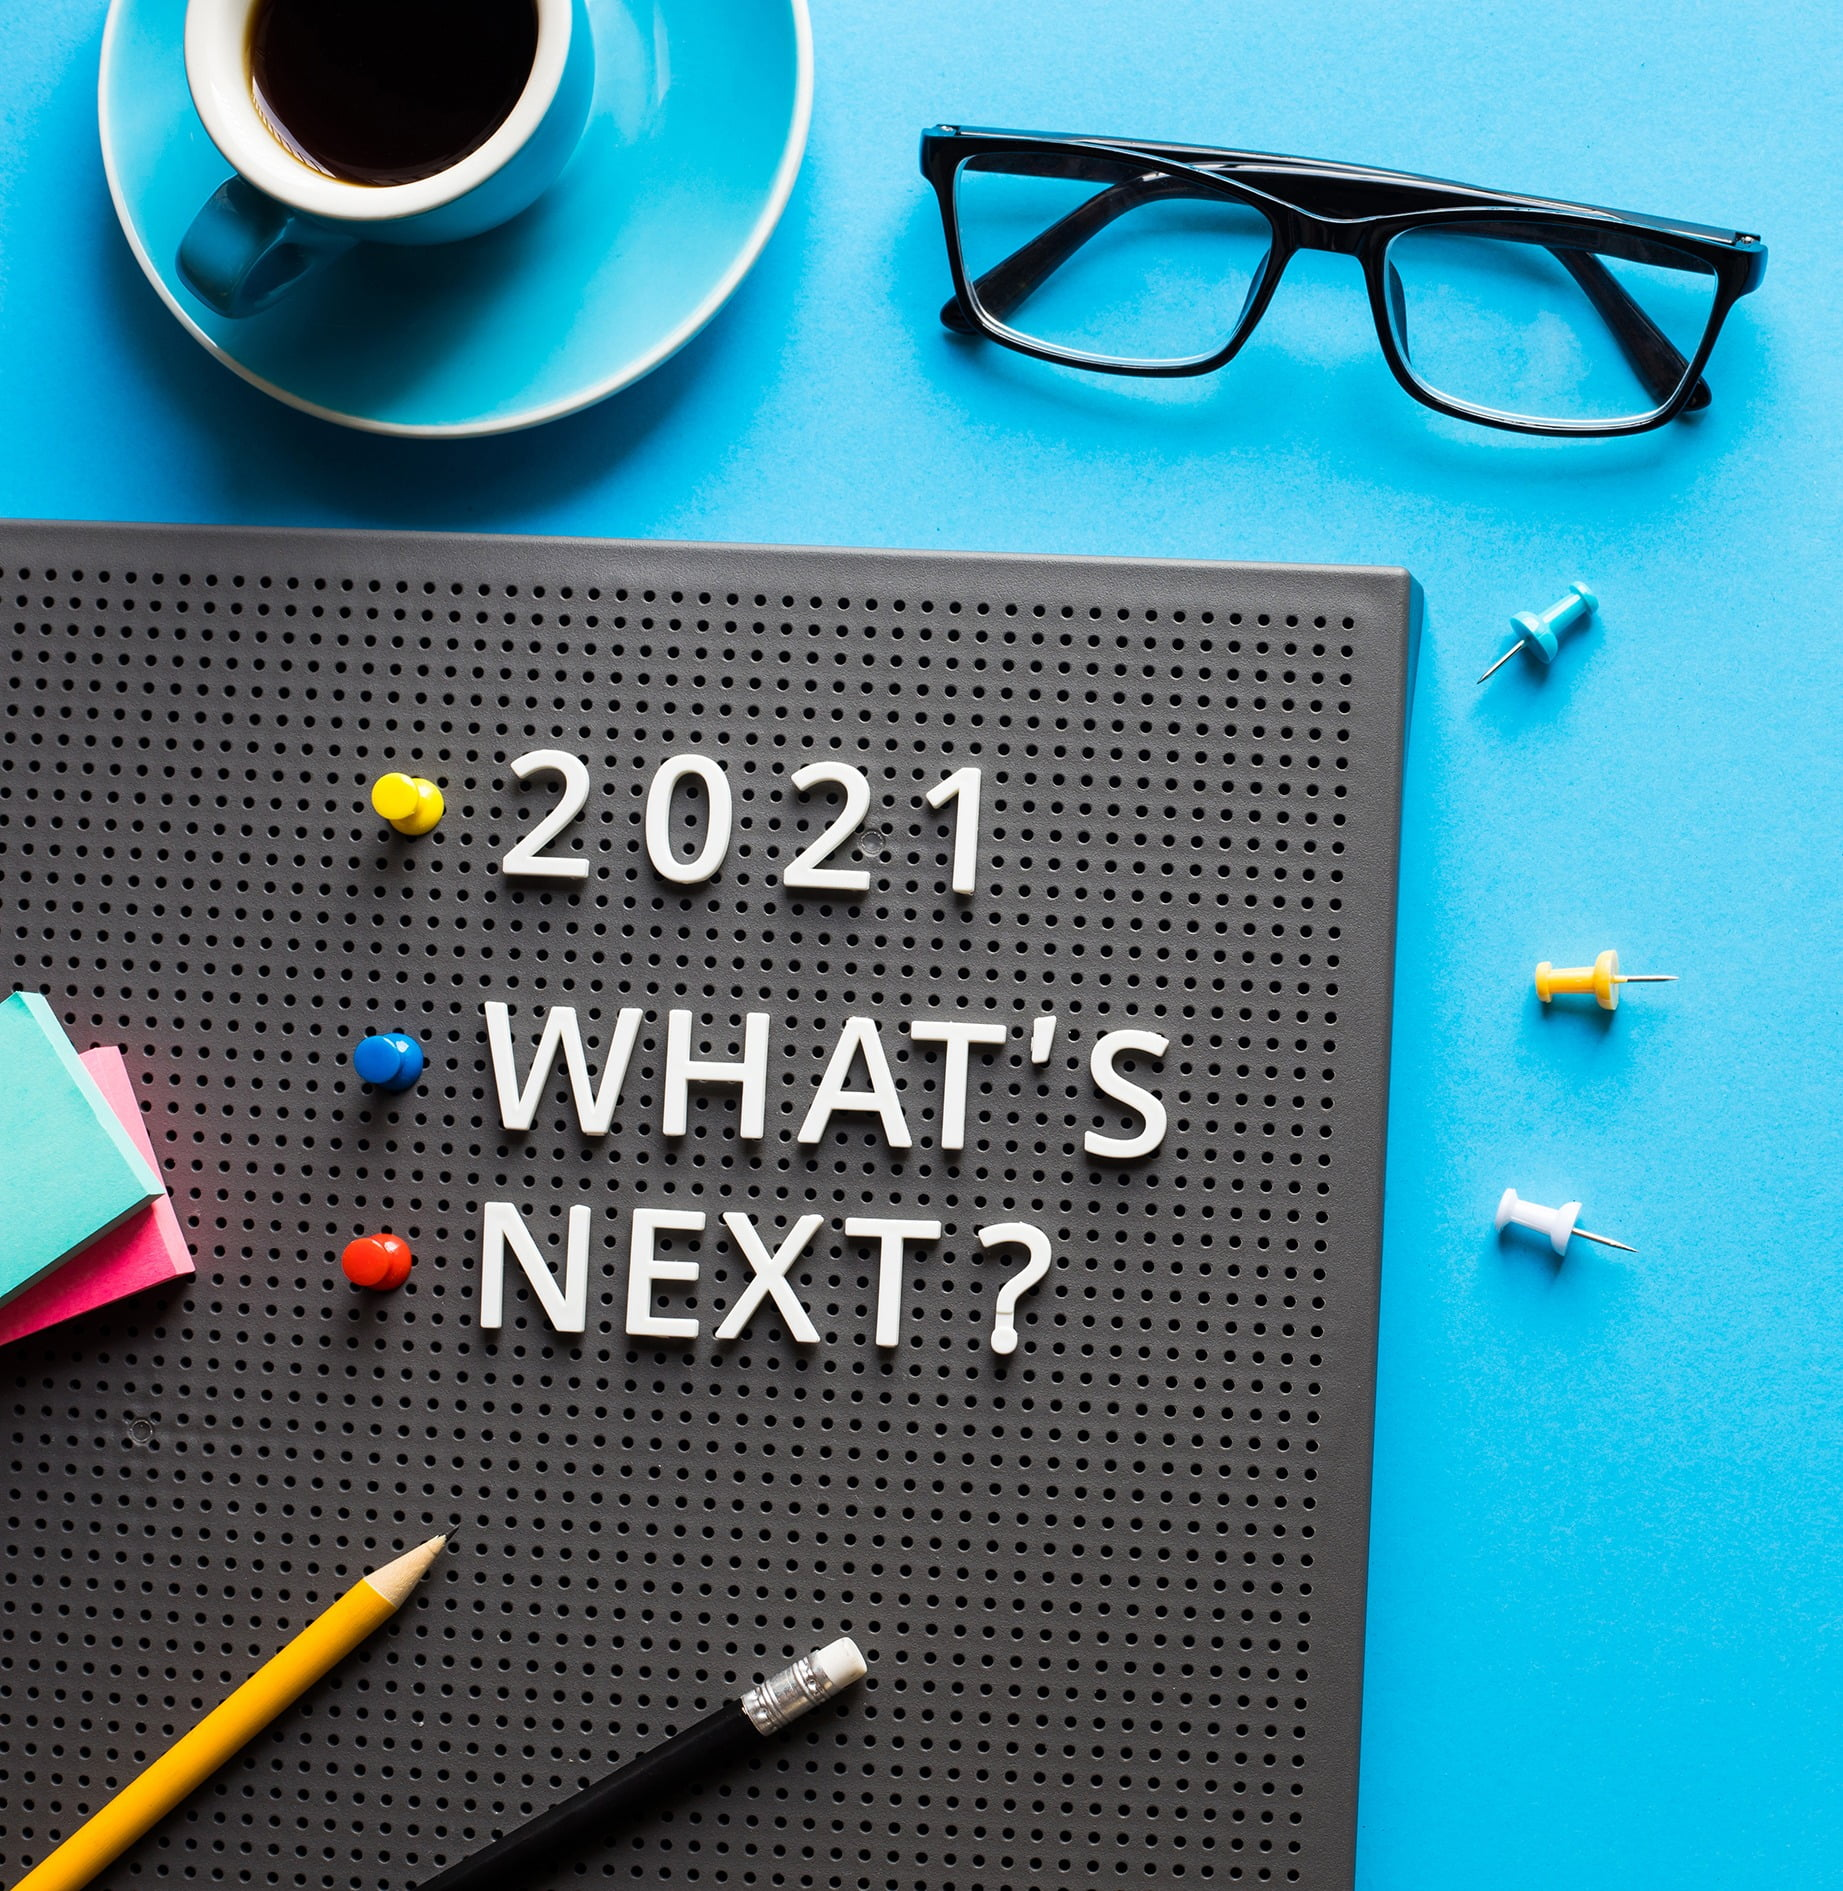 Business corkboard with 2021 Whats Next on desk with coffee, glasses and pencils